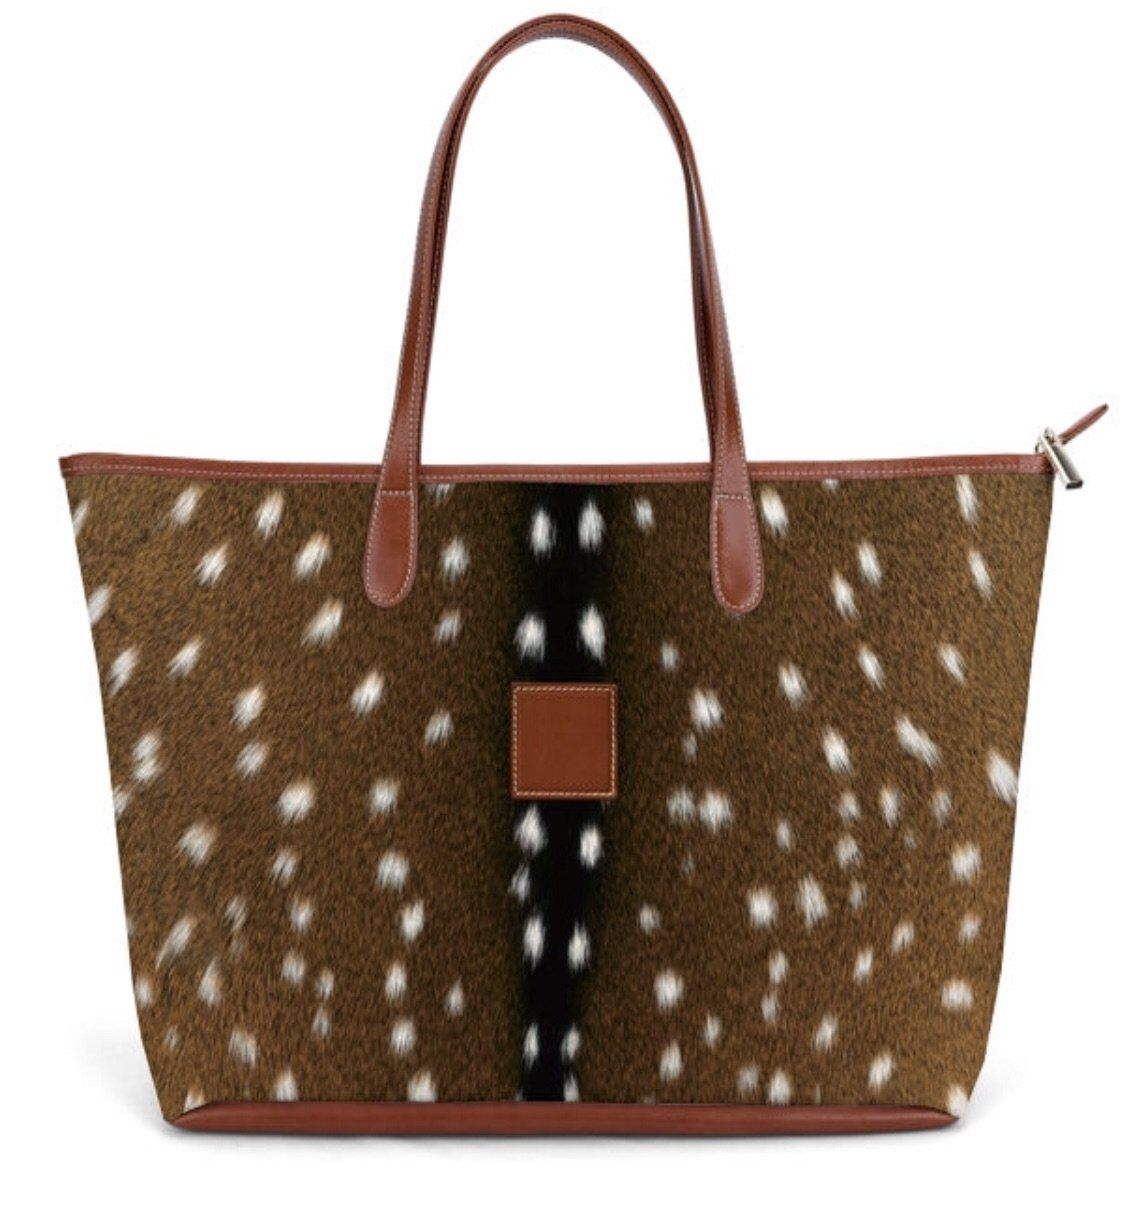 Myra Bag Grand Cowhide Leather Travel Bag S 1124 You can fit all the things in these weekend & travel bags from top designer brands. mac burger pizza